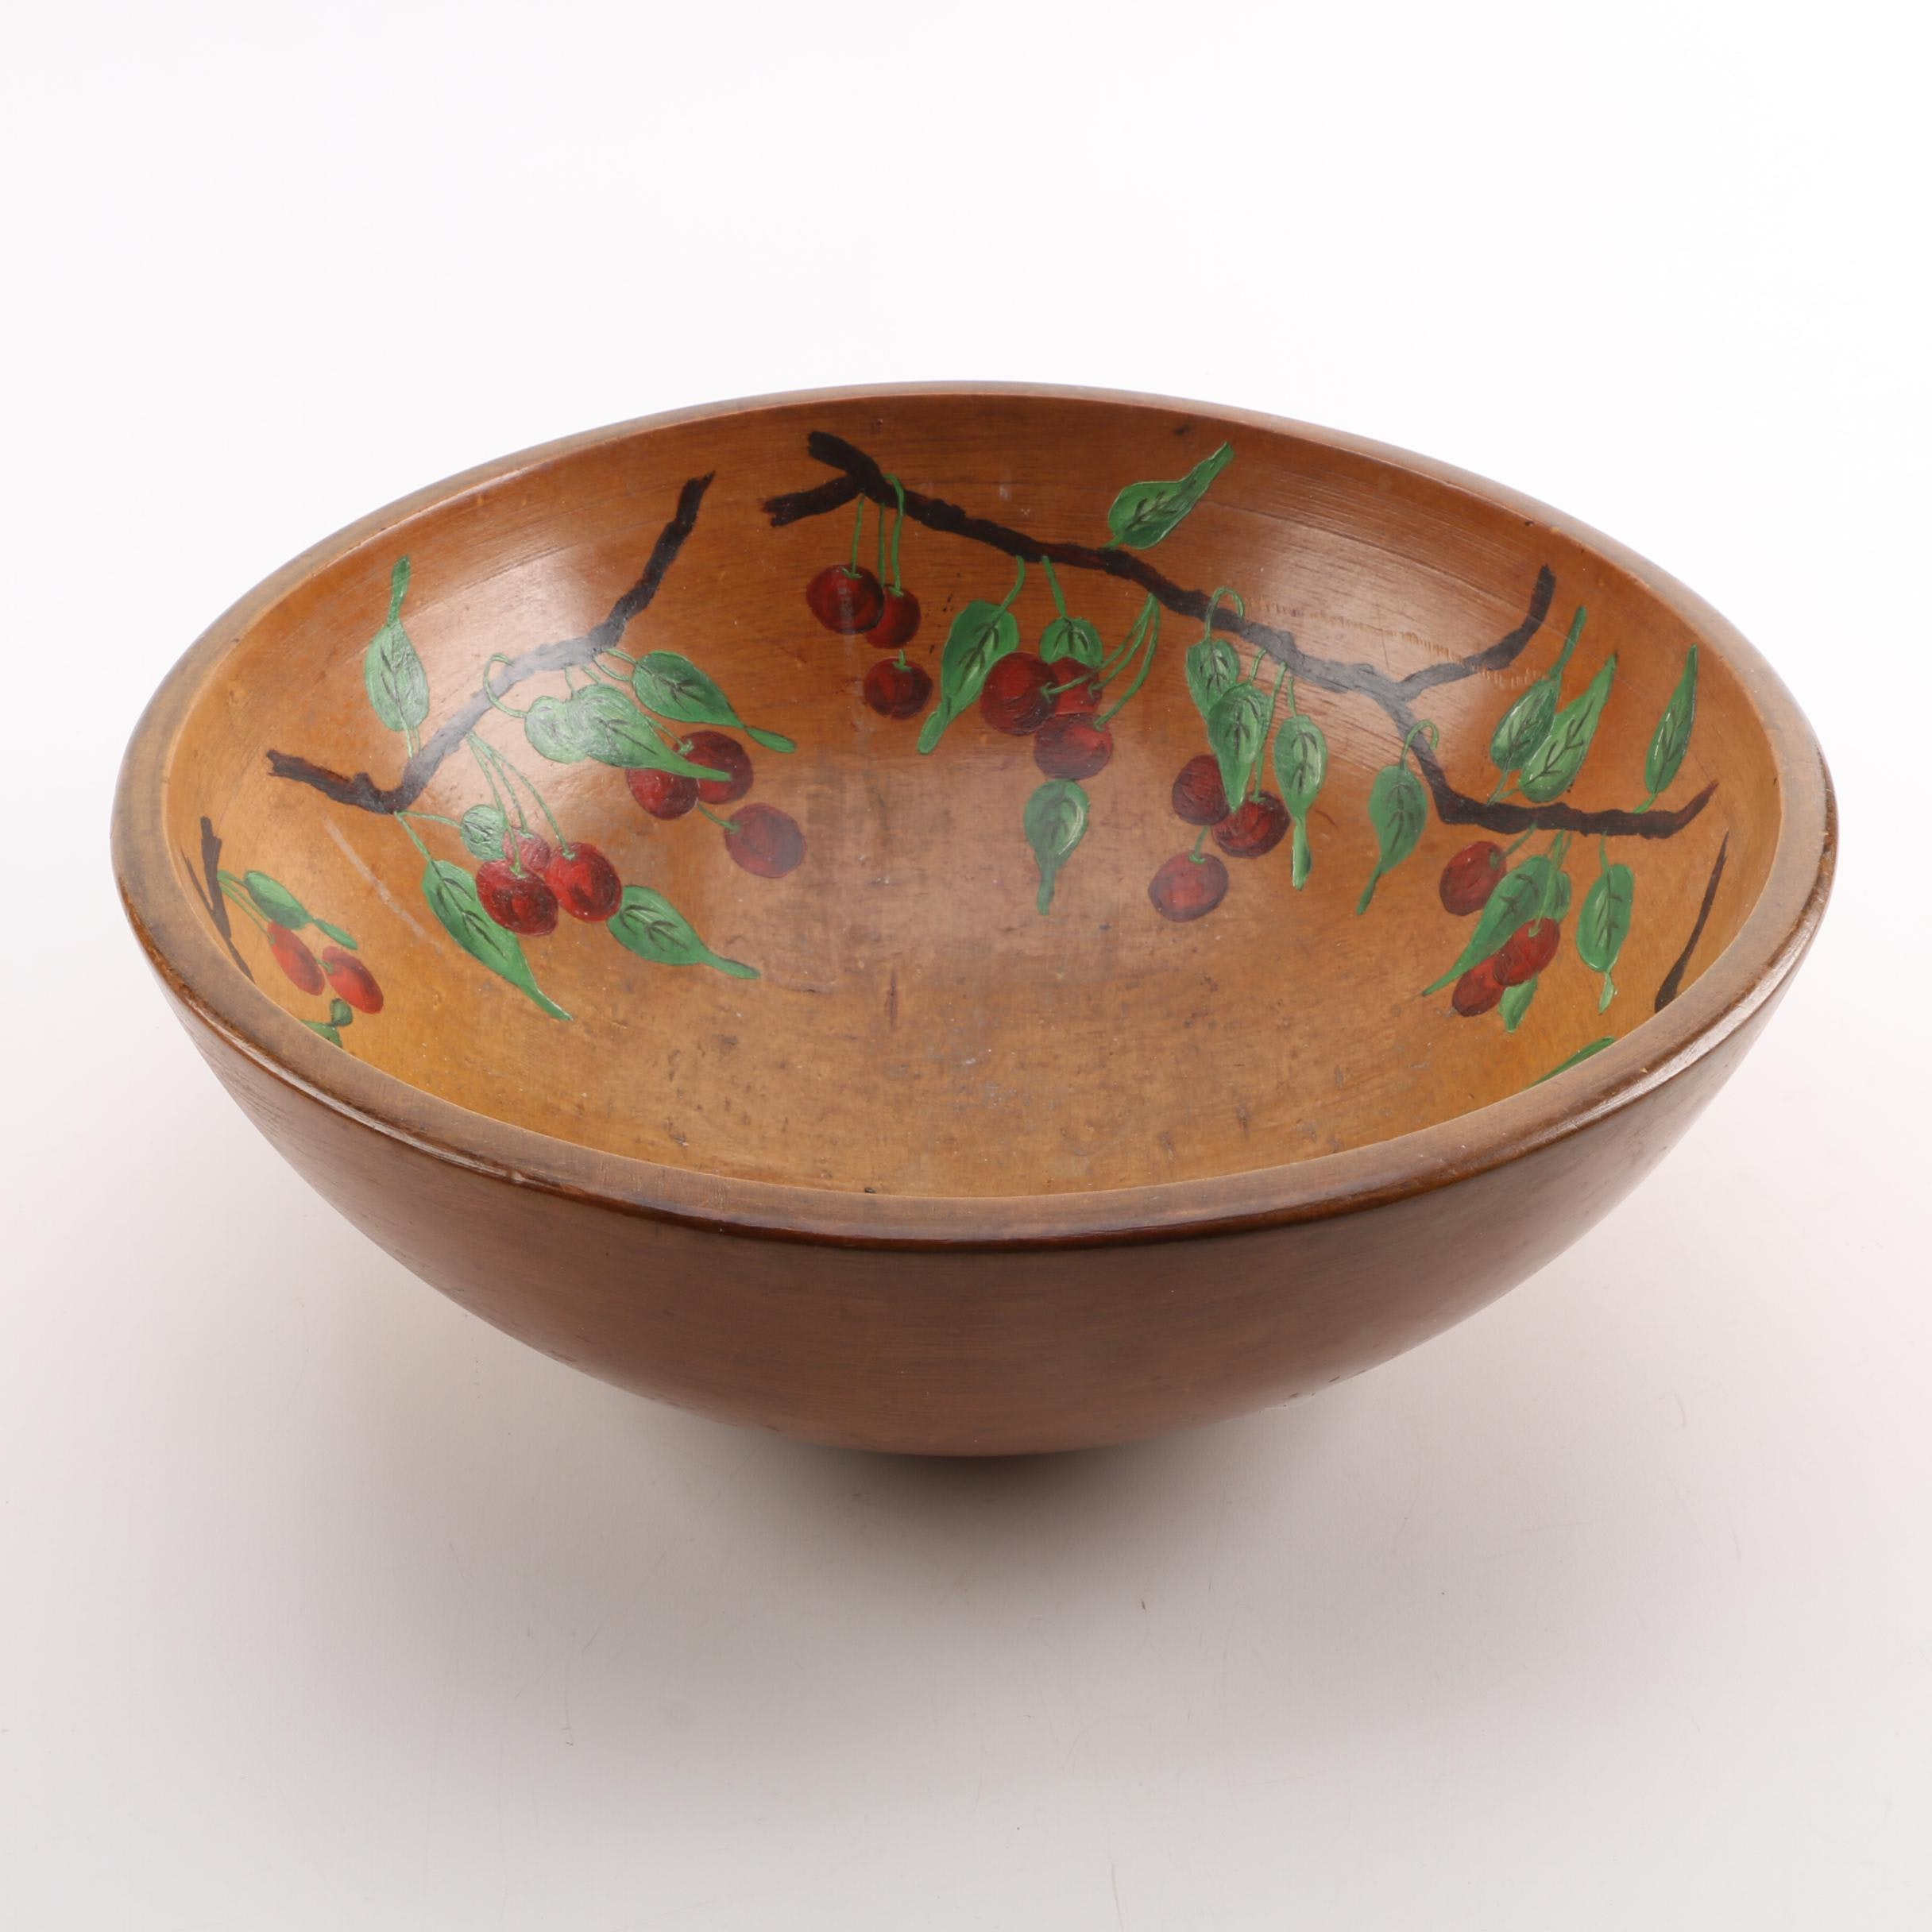 Munising Hand-Painted Turned Wooden Dough Bowl